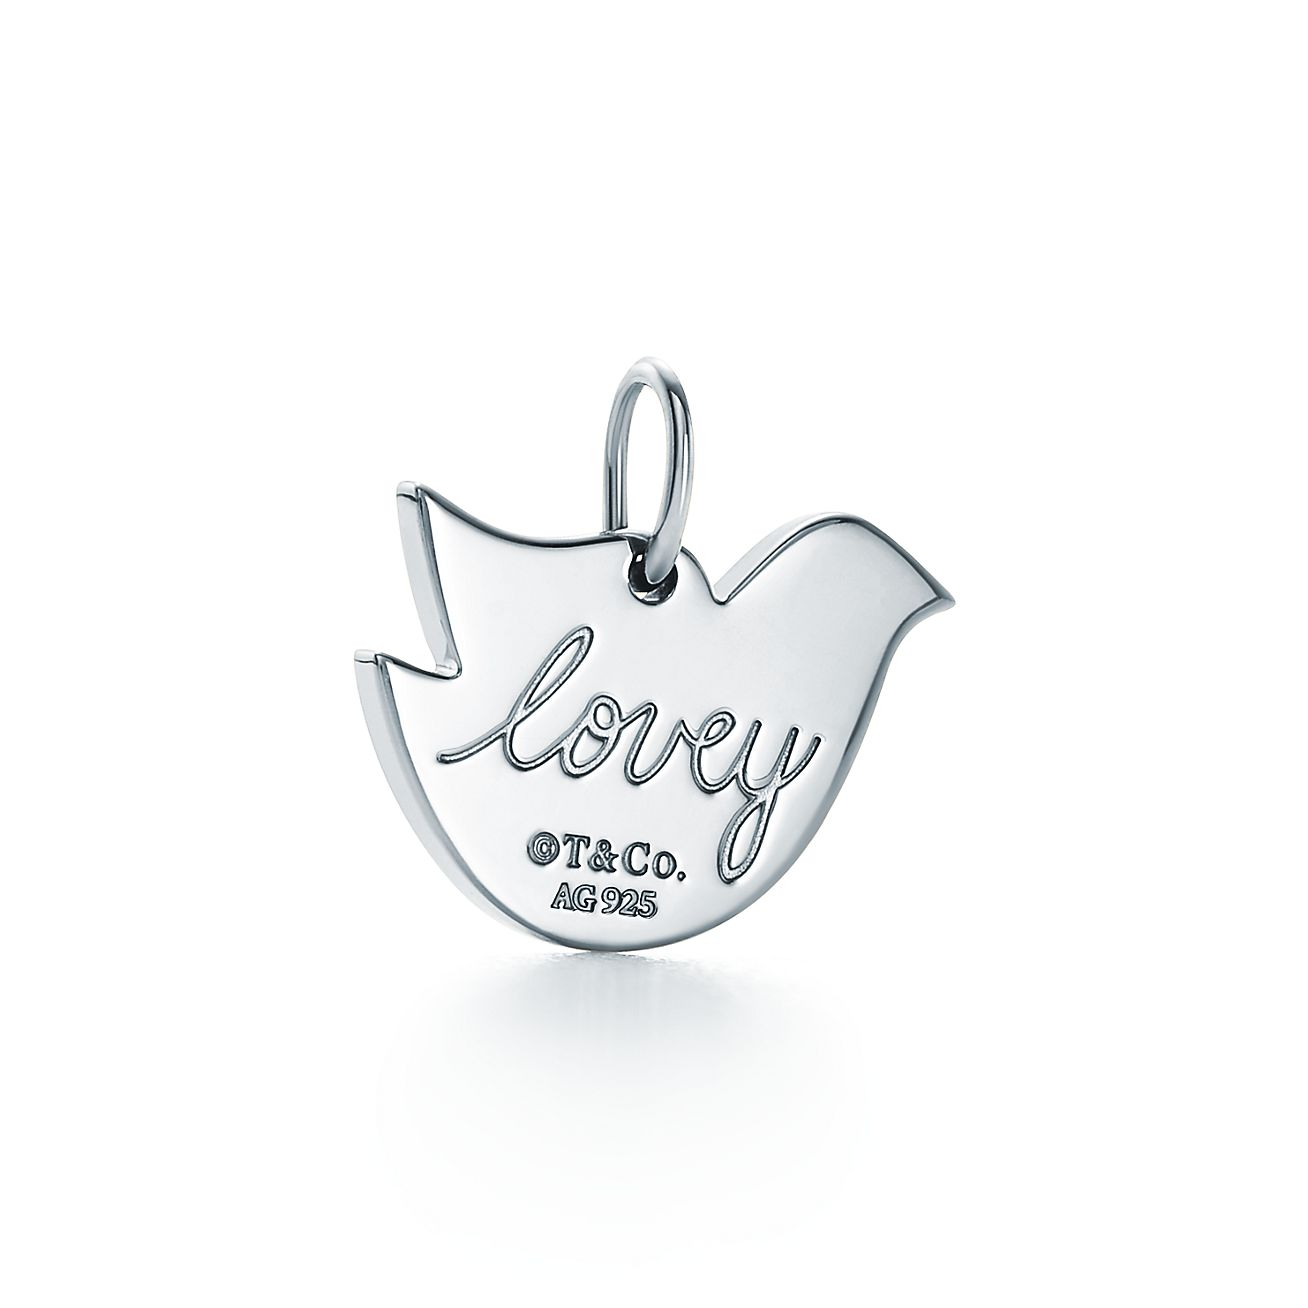 Tiffany Charms lovey dovey charm in sterling silver Tiffany & Co. b6Wzb